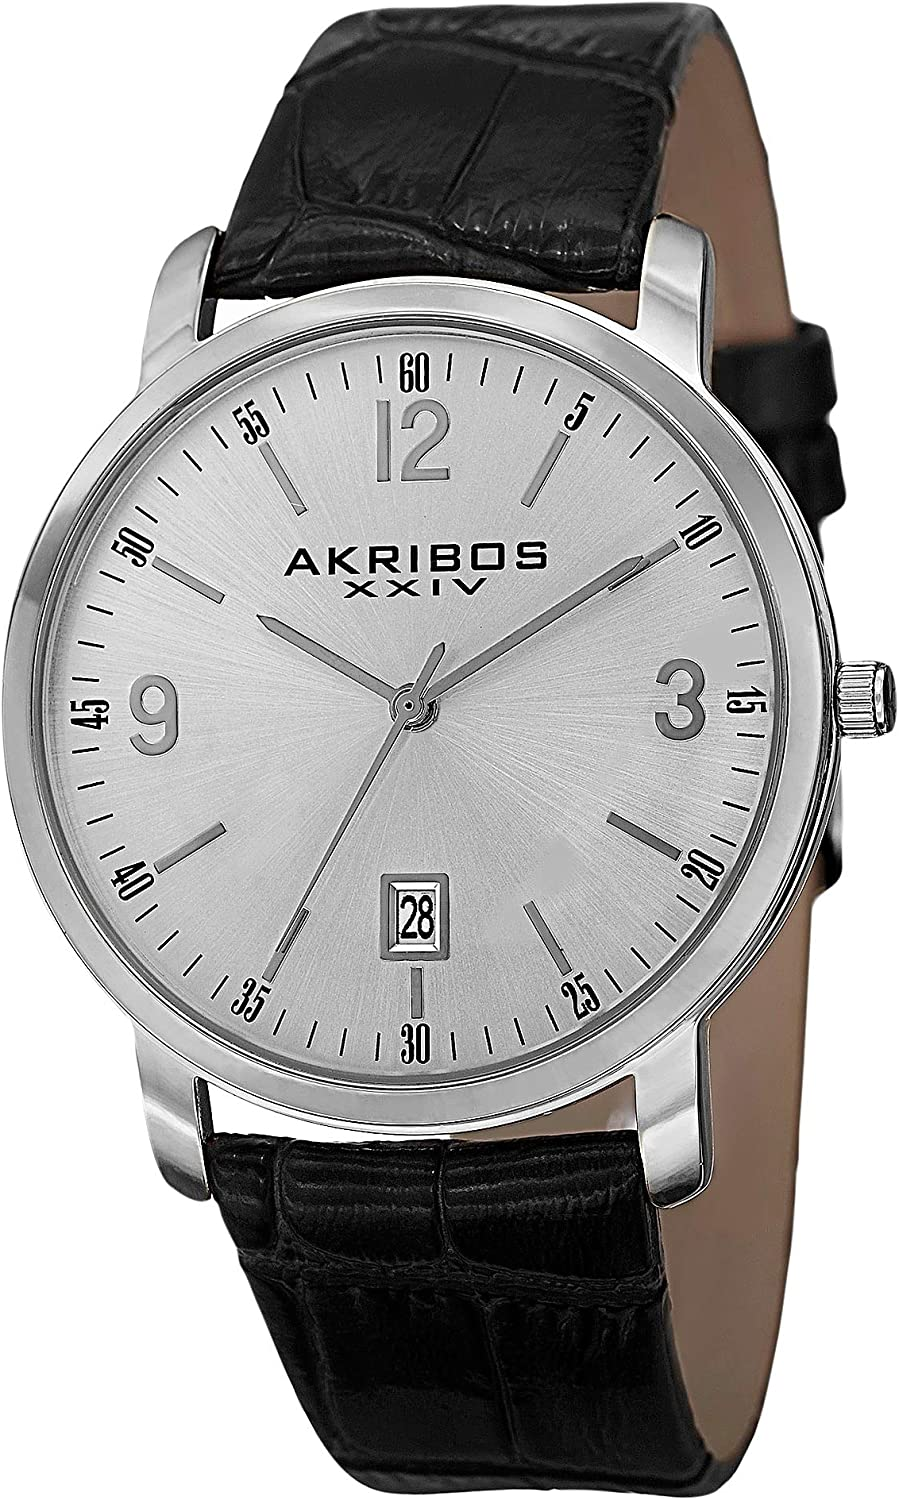 Akribos XXIV Men s Clear Classy Watch – Arabic Numeral Baton Hour Markers with Date Window On Genuine Embossed Crocodile Pattern Strap – AK780